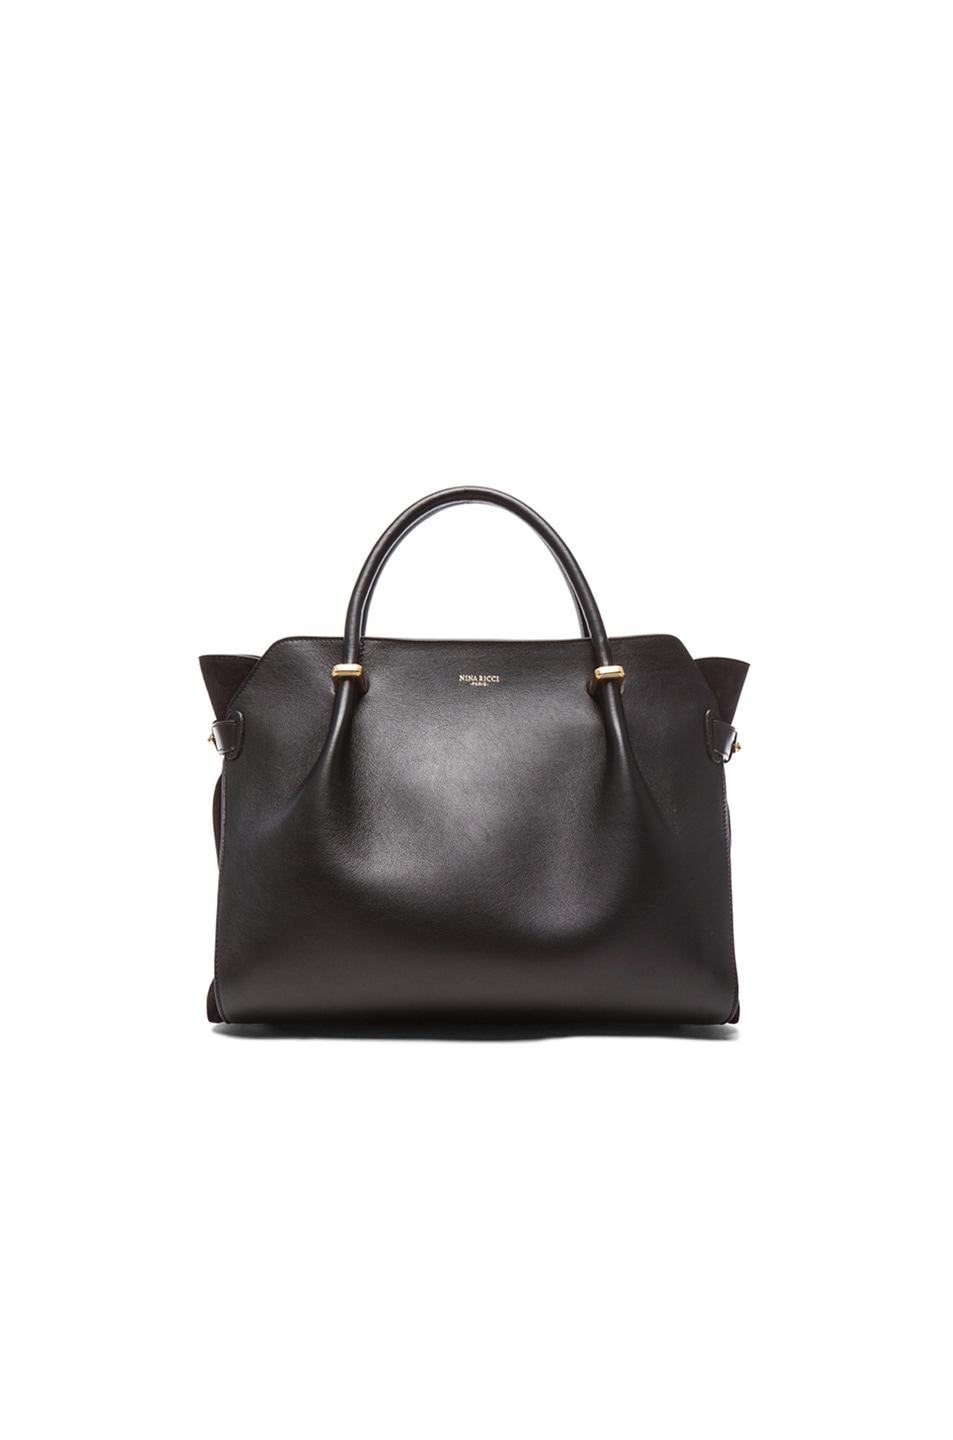 Image 1 of Nina Ricci Small Marche Satchel in Noir